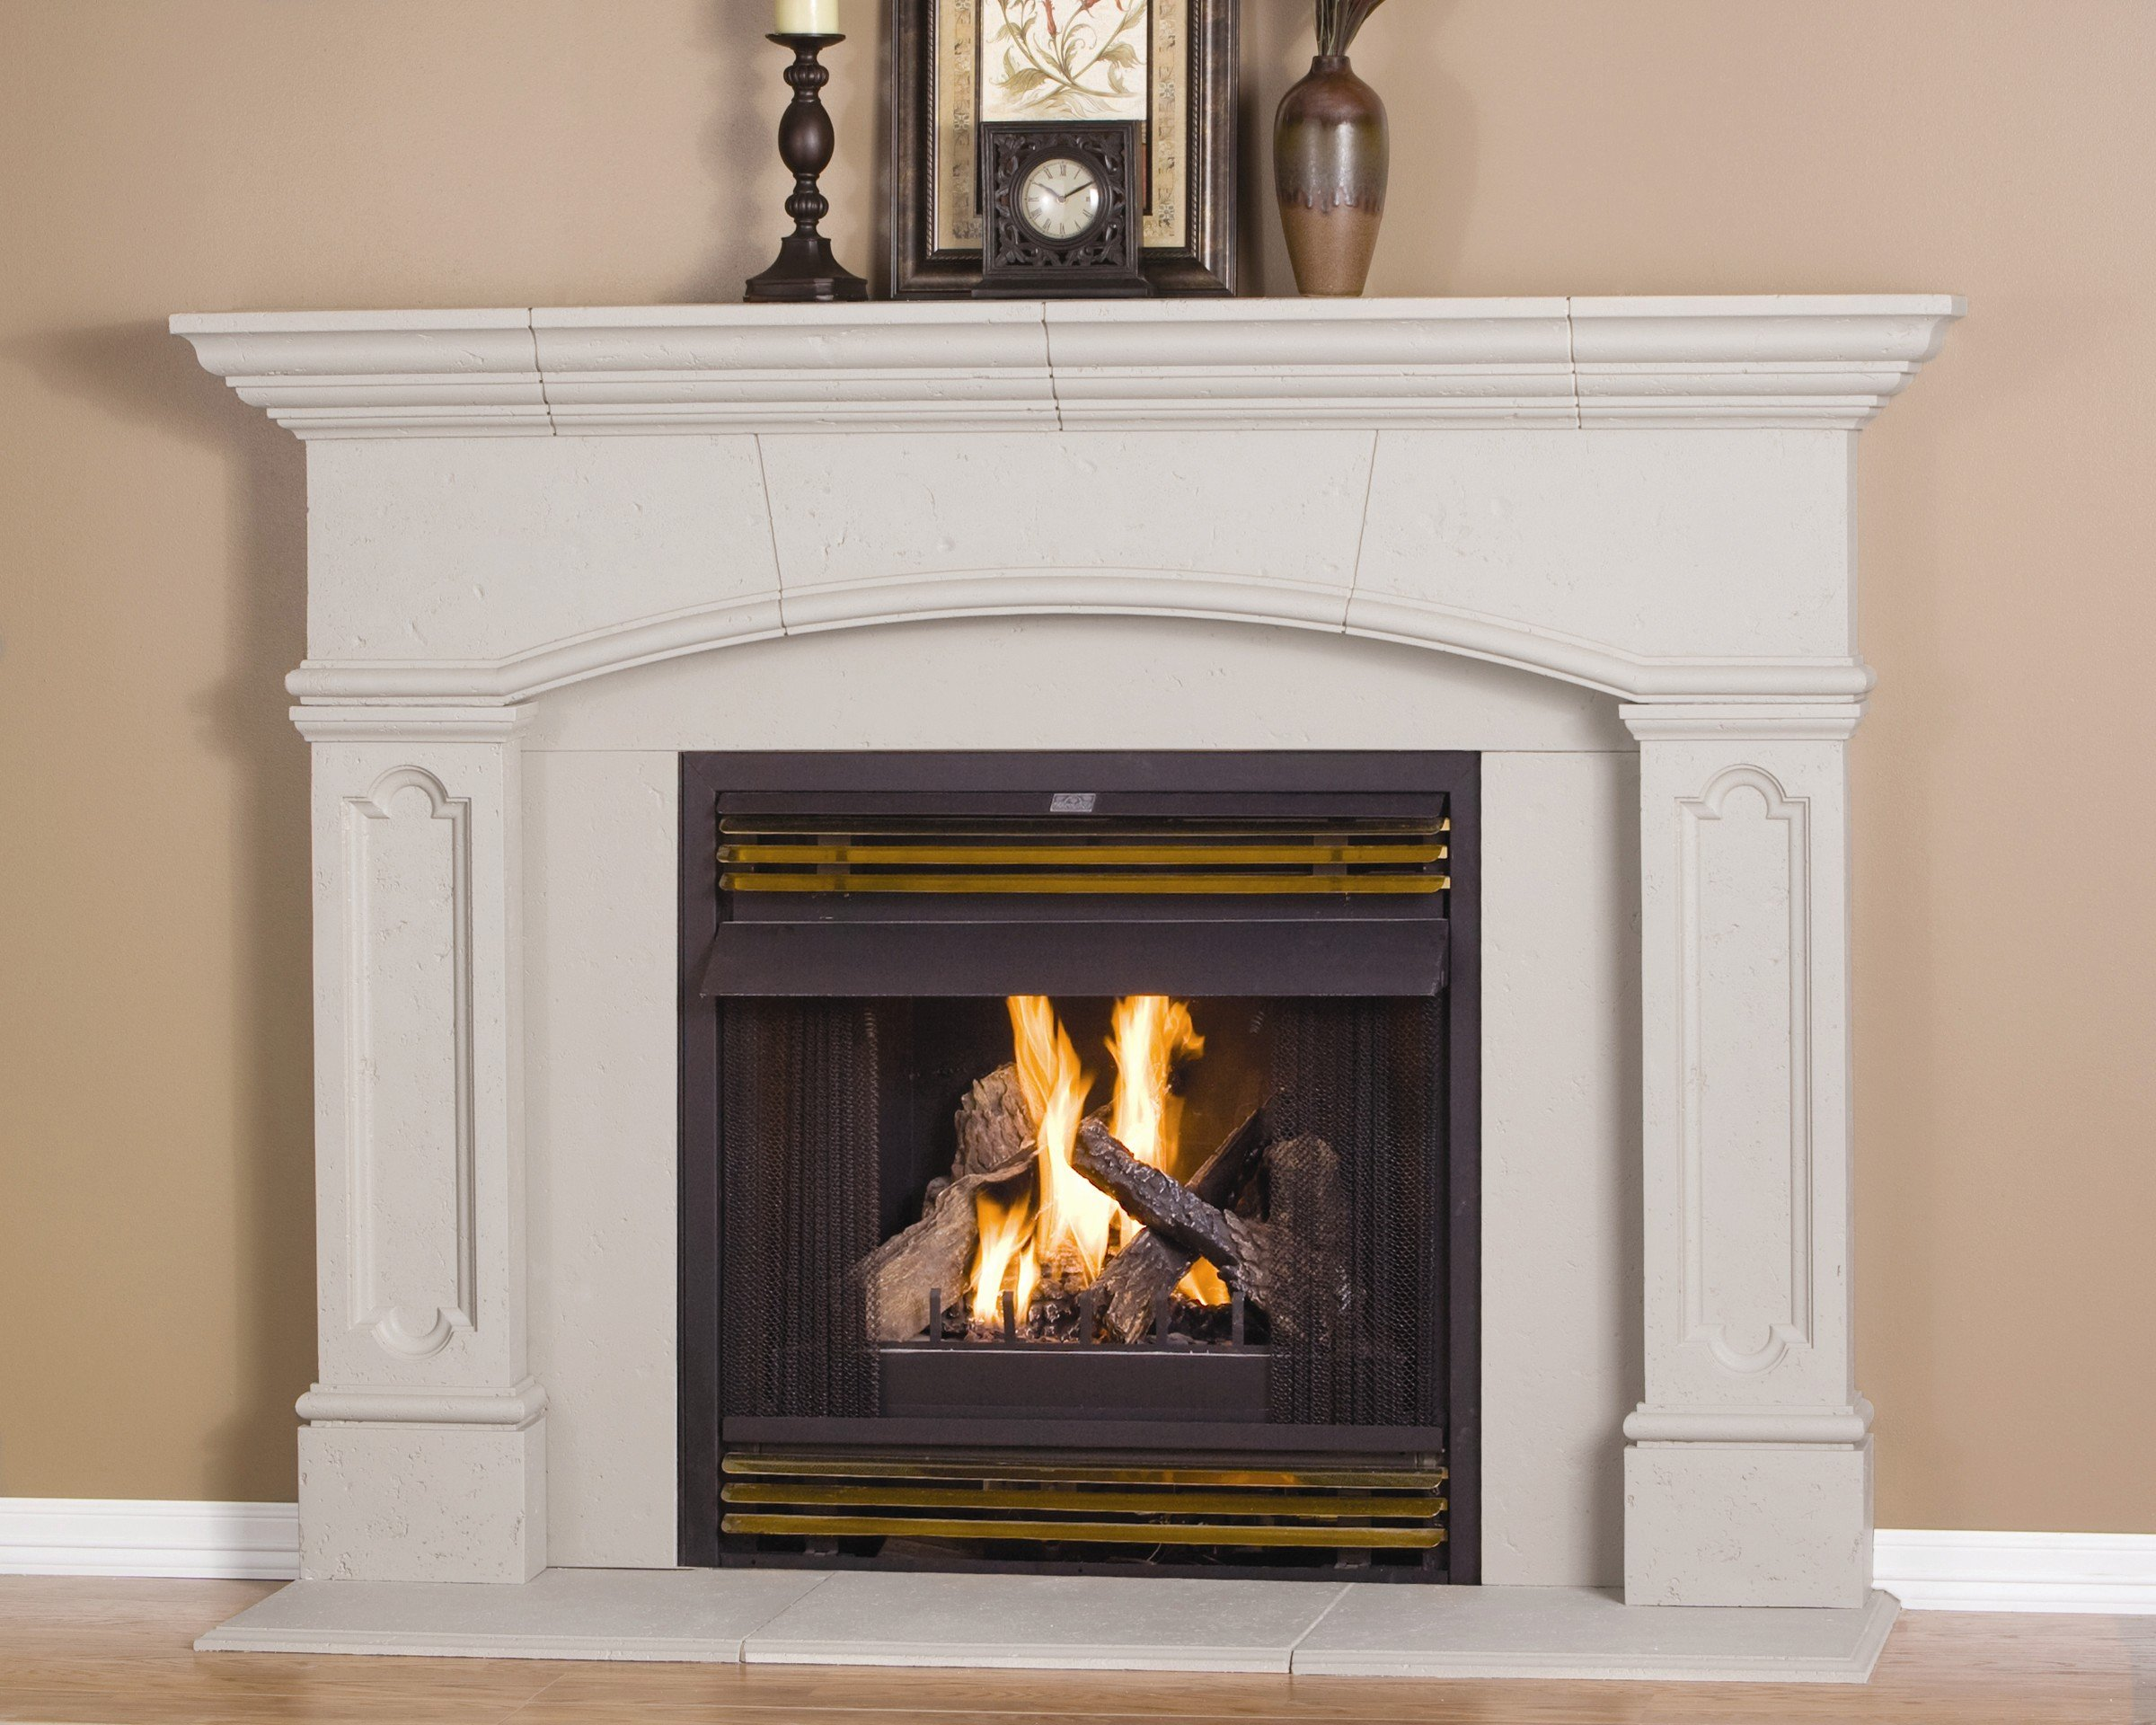 Abington Thin Cast Stone Adjustable Fireplace Mantel Kit - Complete Kit includes Hearth and Adjustable Interior Filler Panels by Cast Stone Mantel America